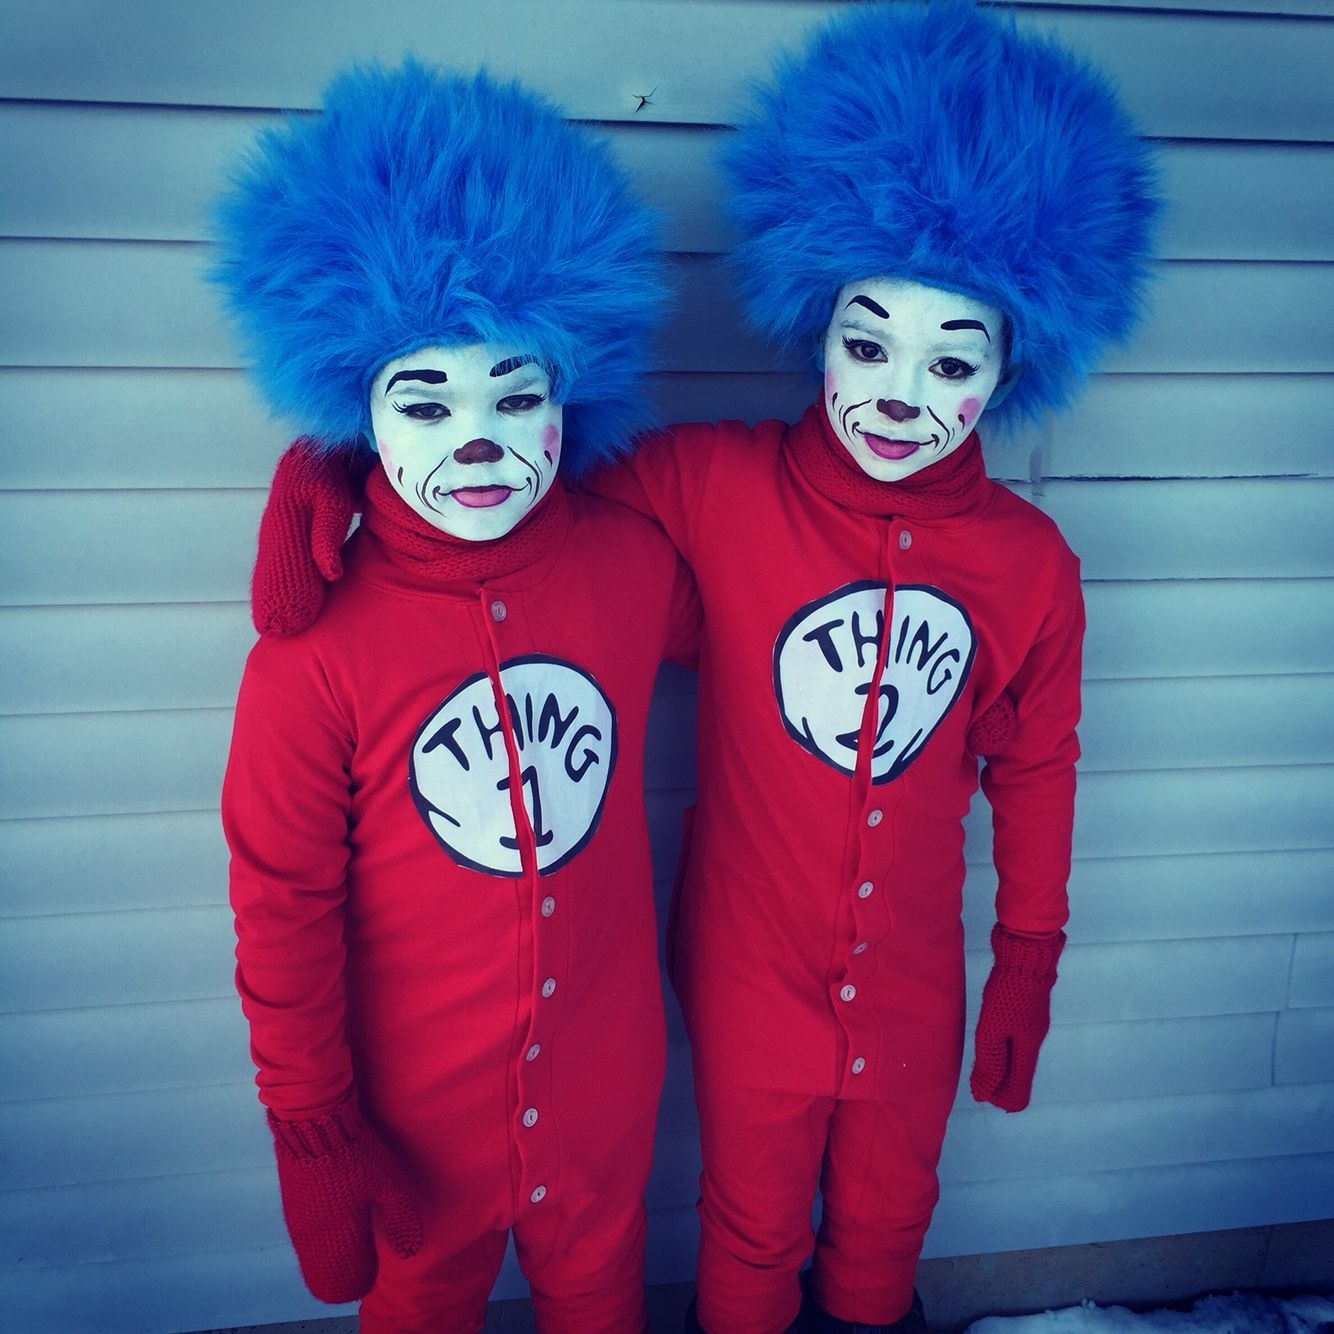 Thing 1 and Thing 2 costumes and face painting ideas. Mittens custom made  by wewearcrochet.etsy.com 5196ab143c